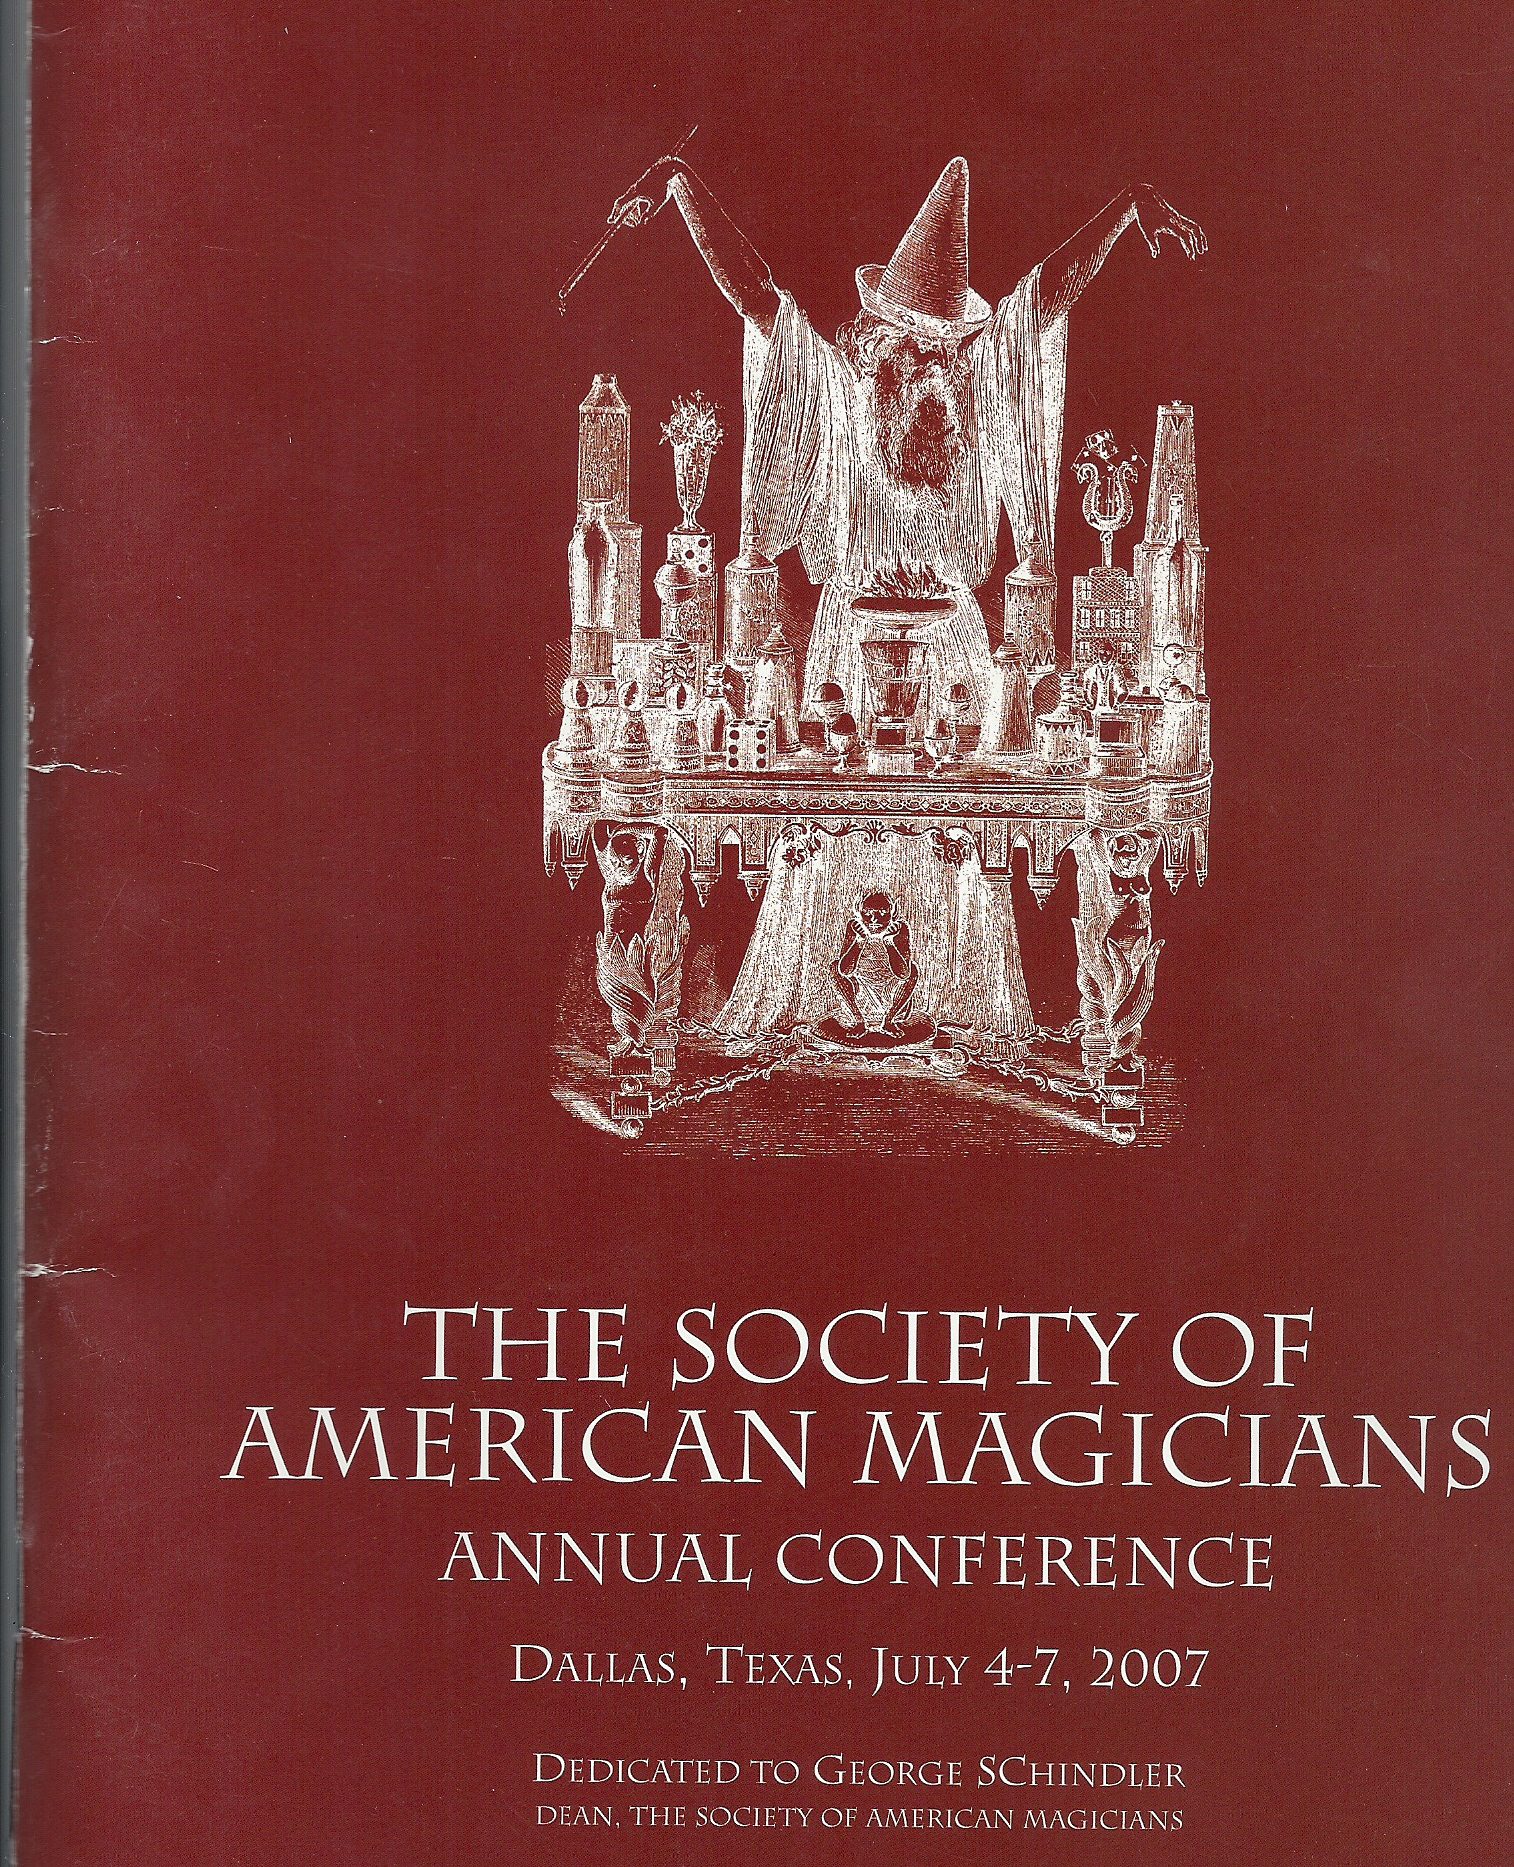 Sosciety of American Magicians Conference 2007